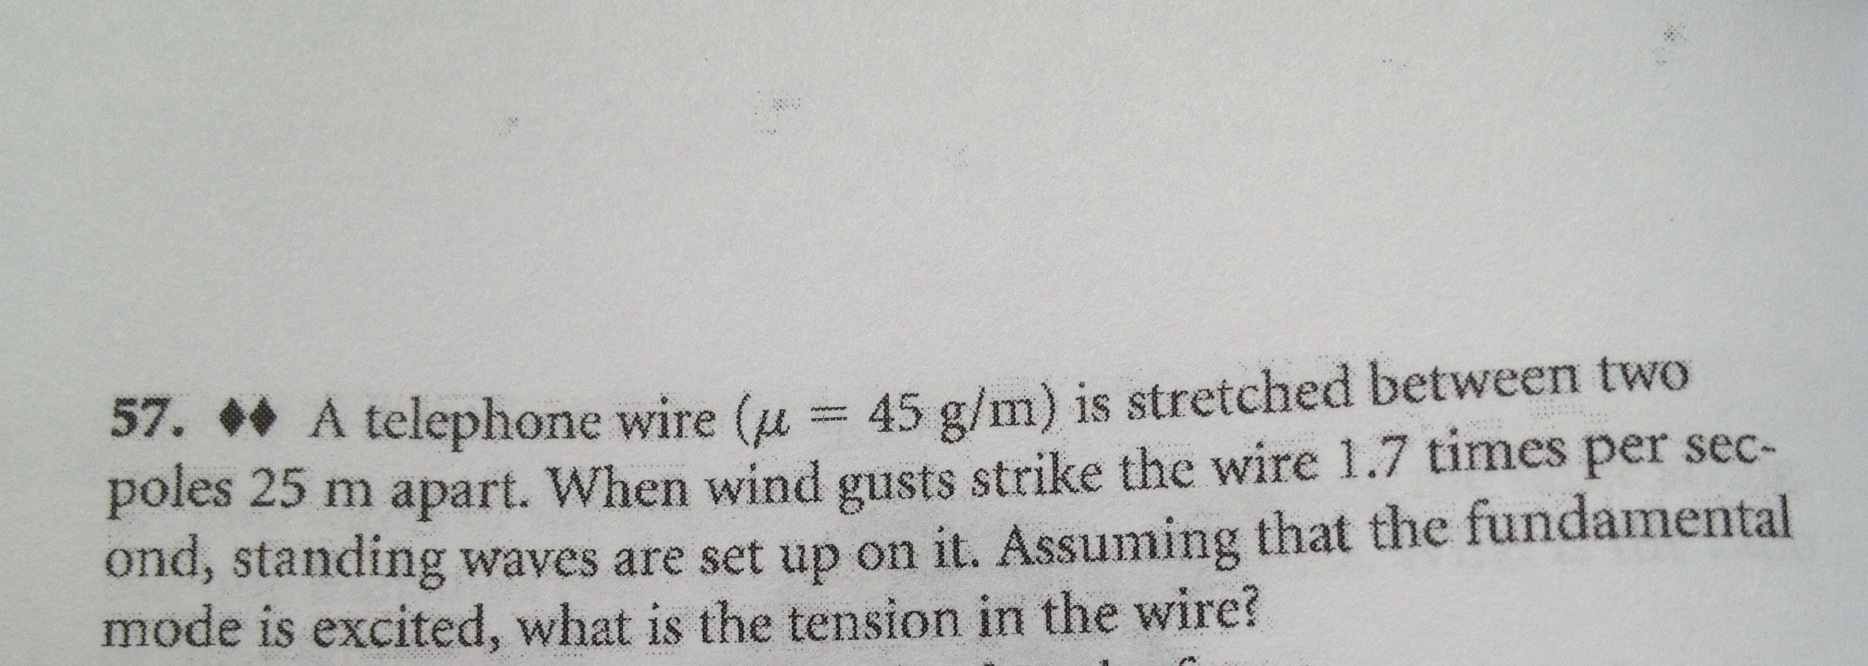 A telephone wire (mu = 45 g/m) is sretched between